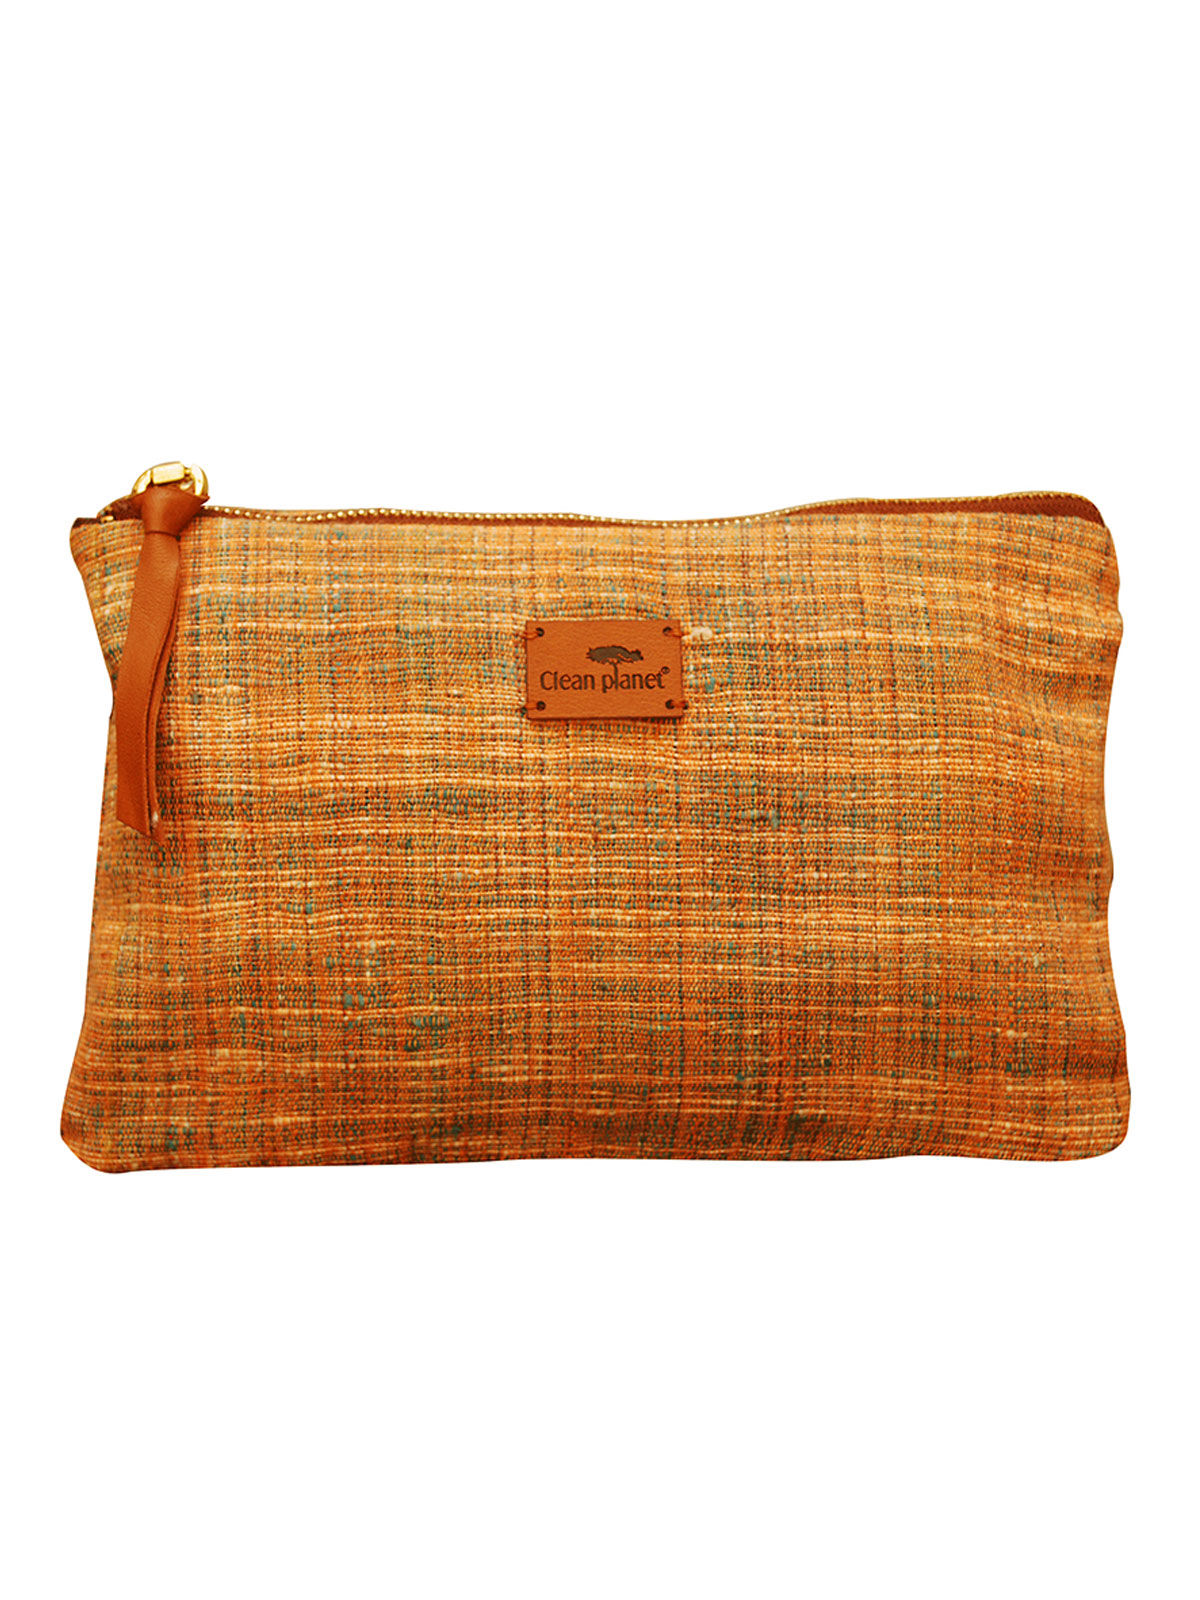 Khadi Pouch (Green Peach)